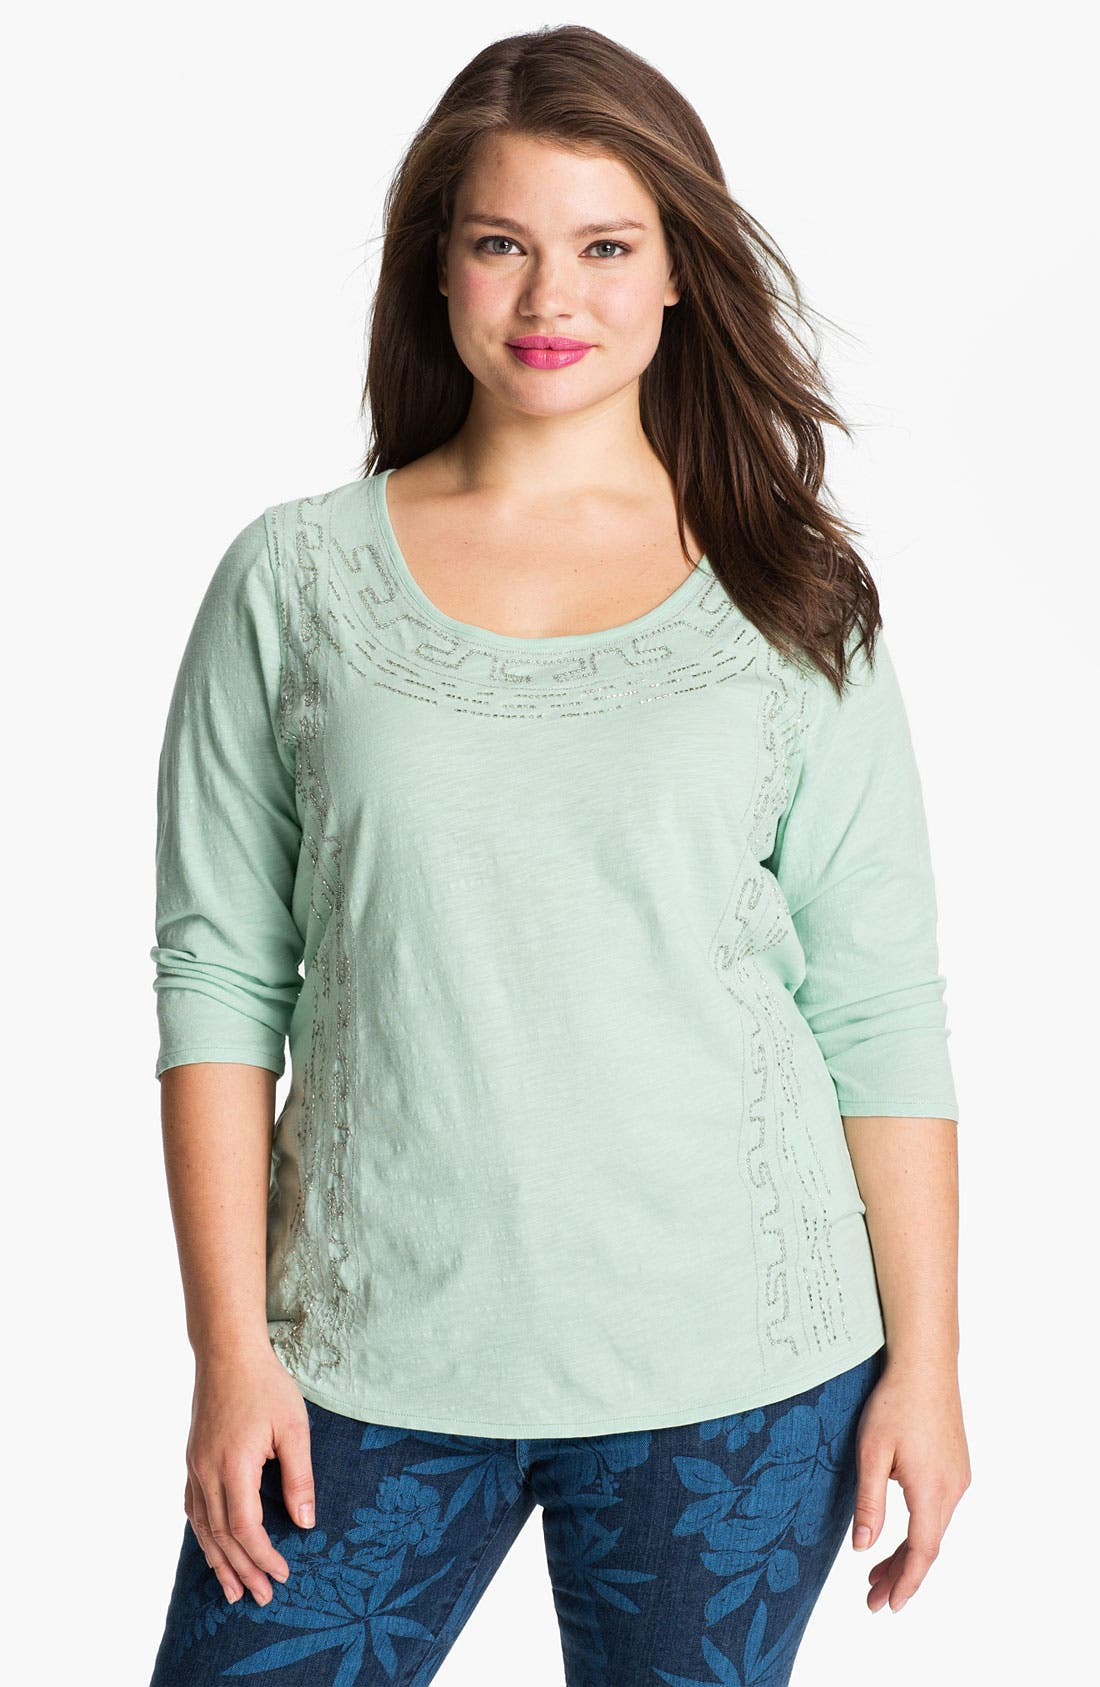 Alternate Image 1 Selected - Lucky Brand Beaded Deco Border Tee (Plus)